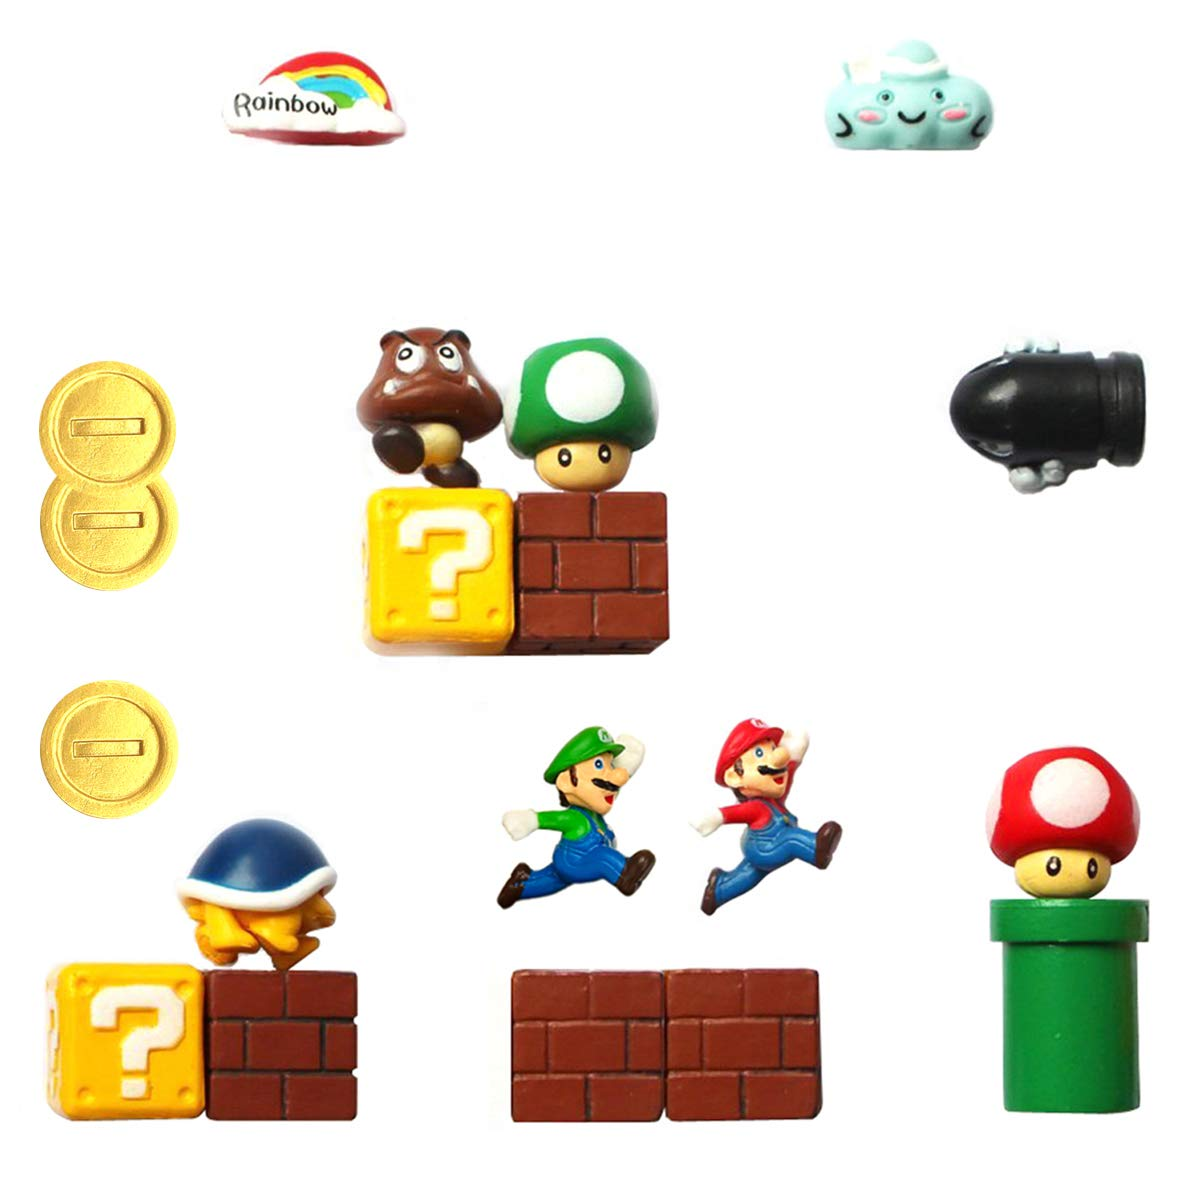 Super Mario Fridge Magnets - 18 PCS Refrigerator Magnets,Office Magnets,Calendar Magnet,Whiteboard Magnets,Christmas Magnets,Perfect Decorative Magnet